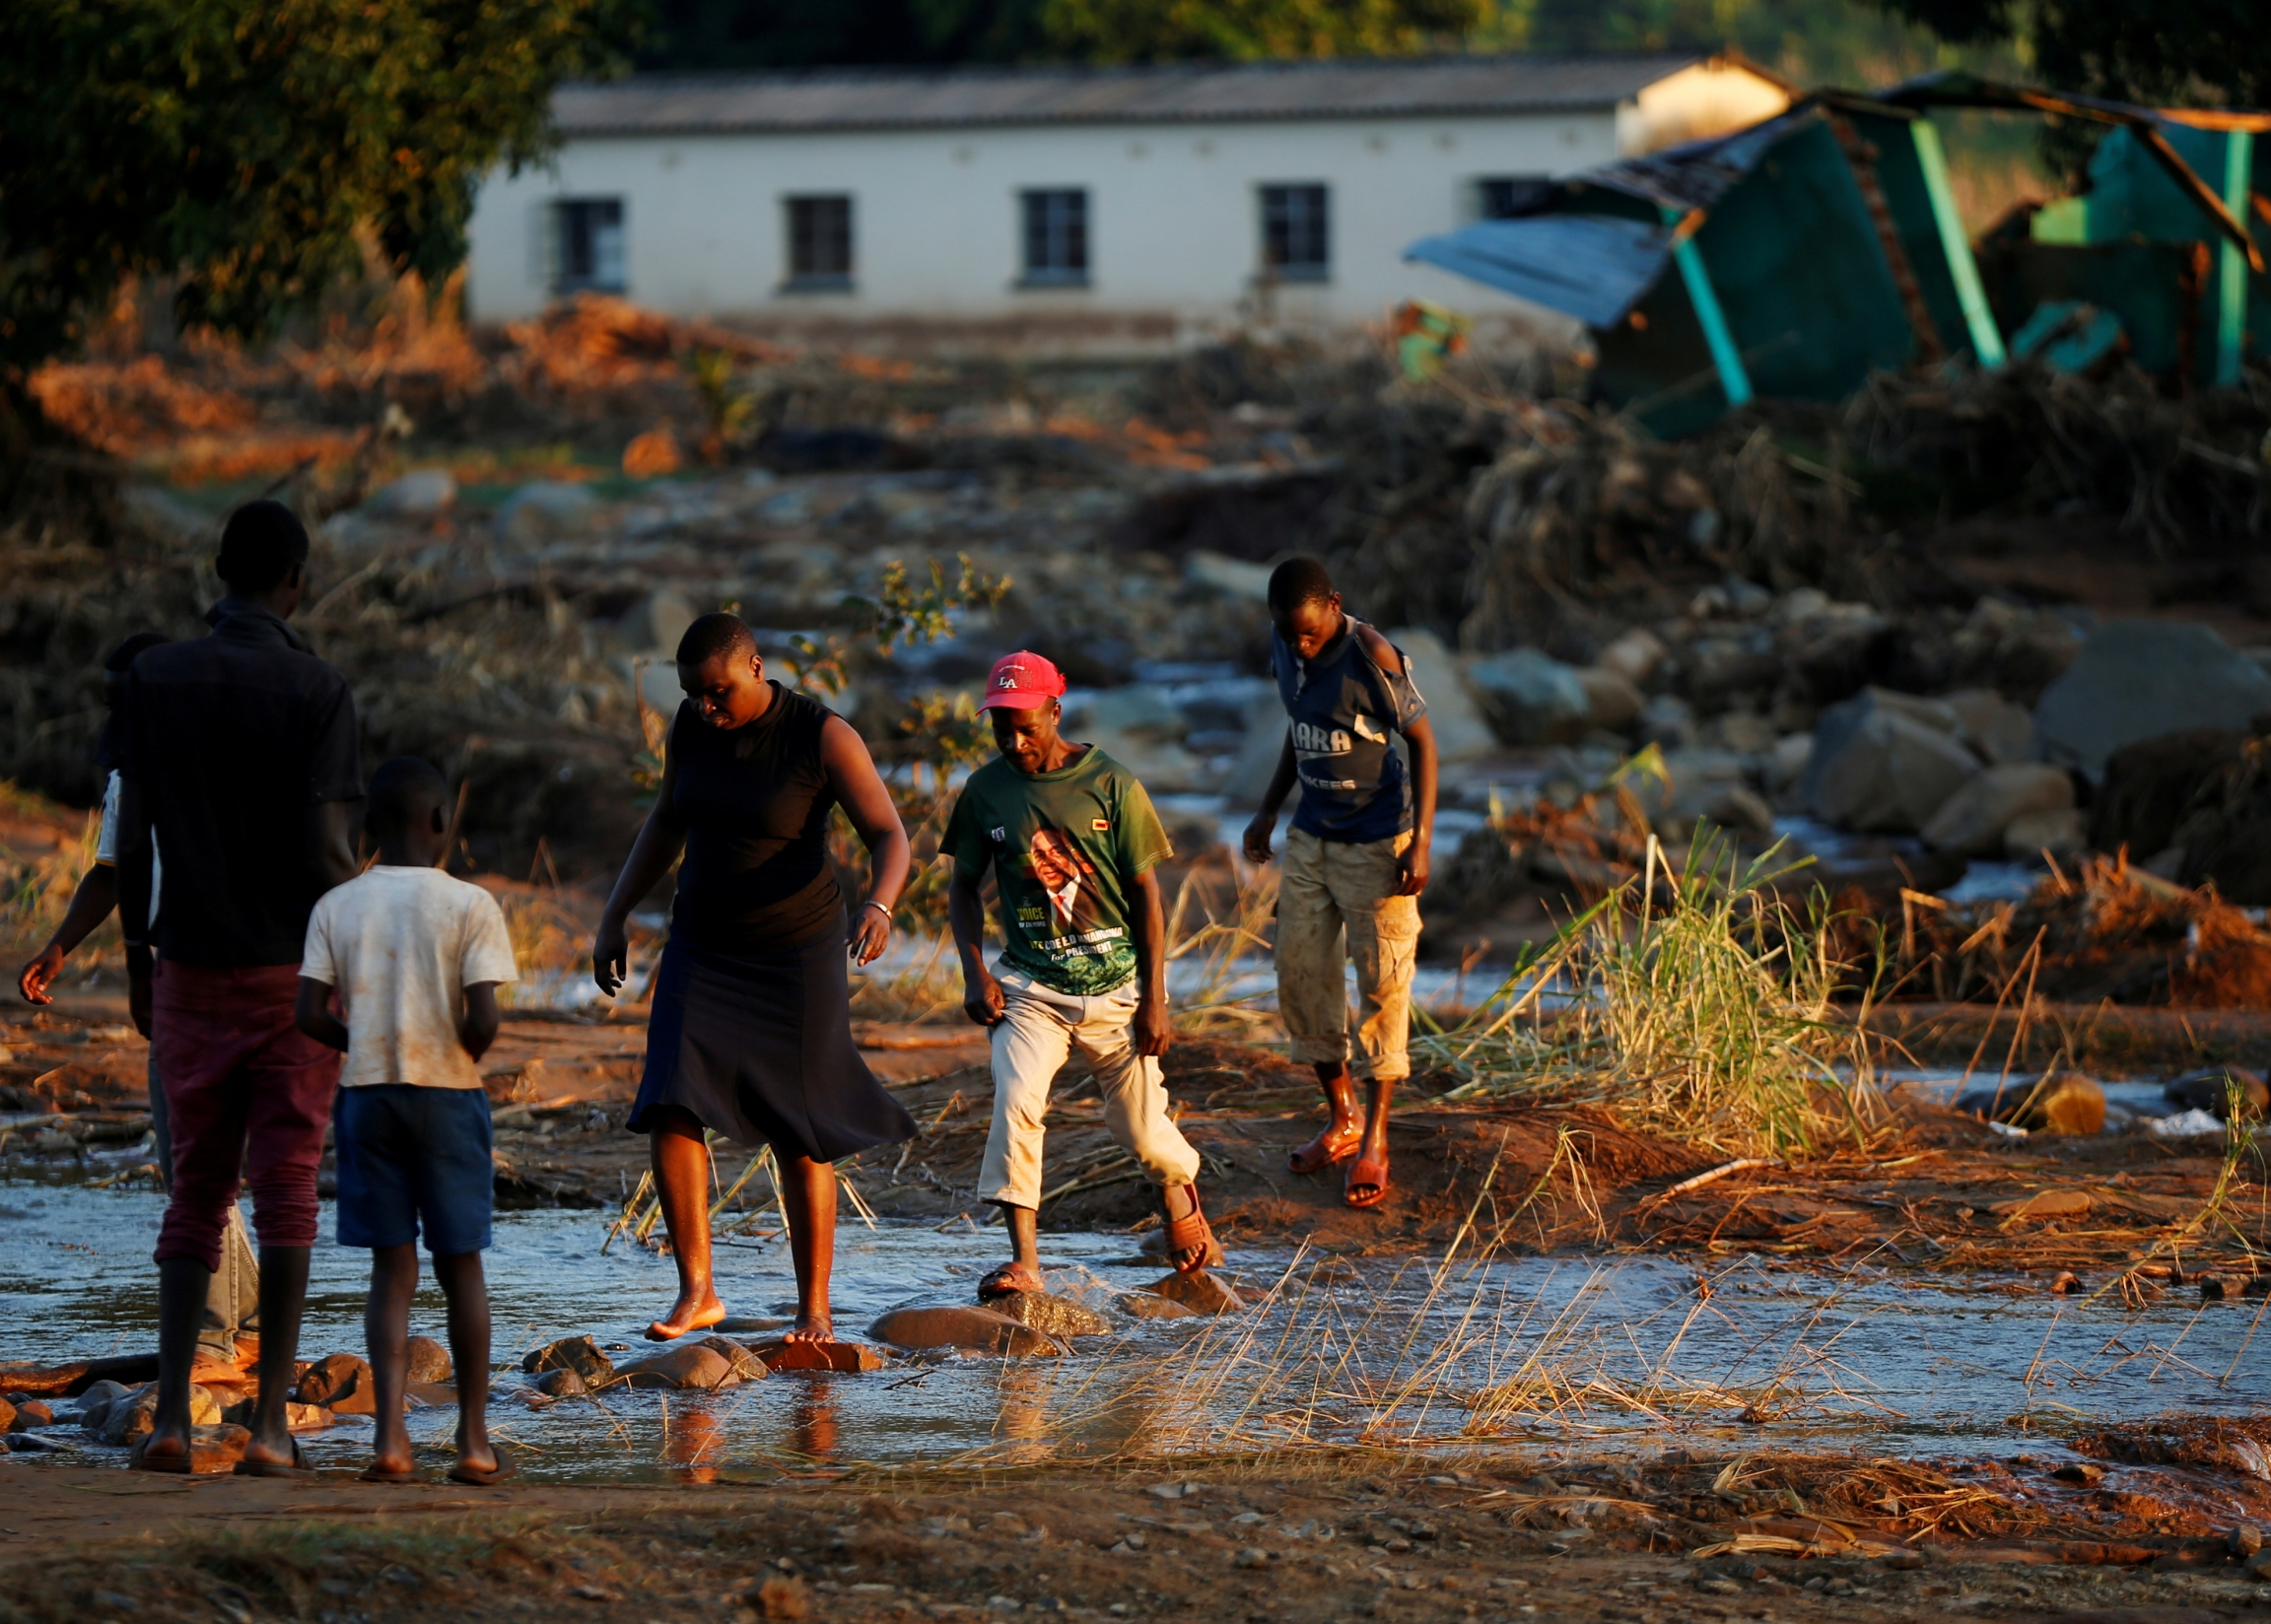 Survivors of Cyclone Idai walk through flooded waters to business center to receive aid.